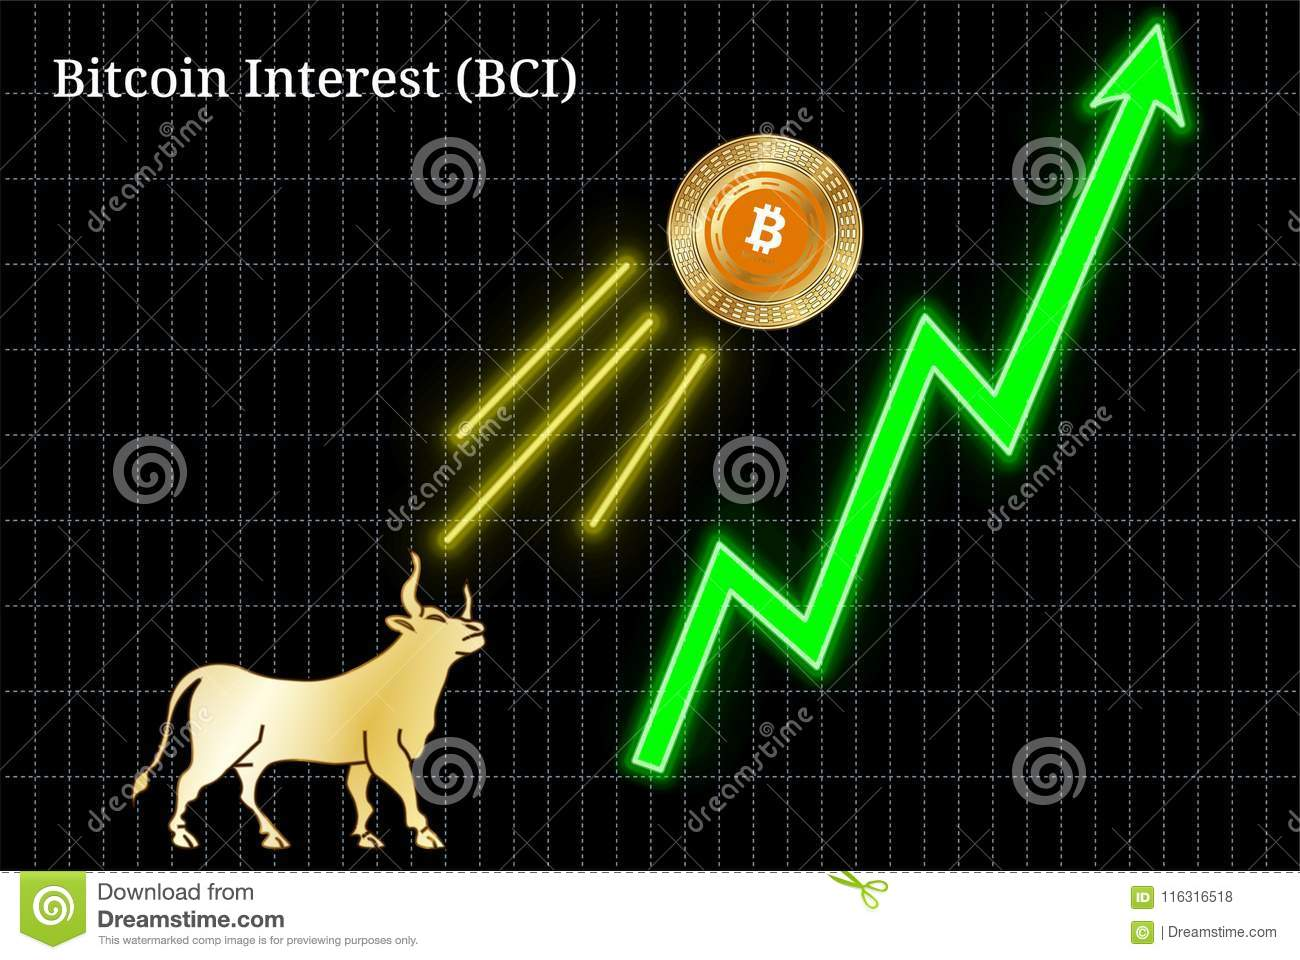 interest in cryptocurrency